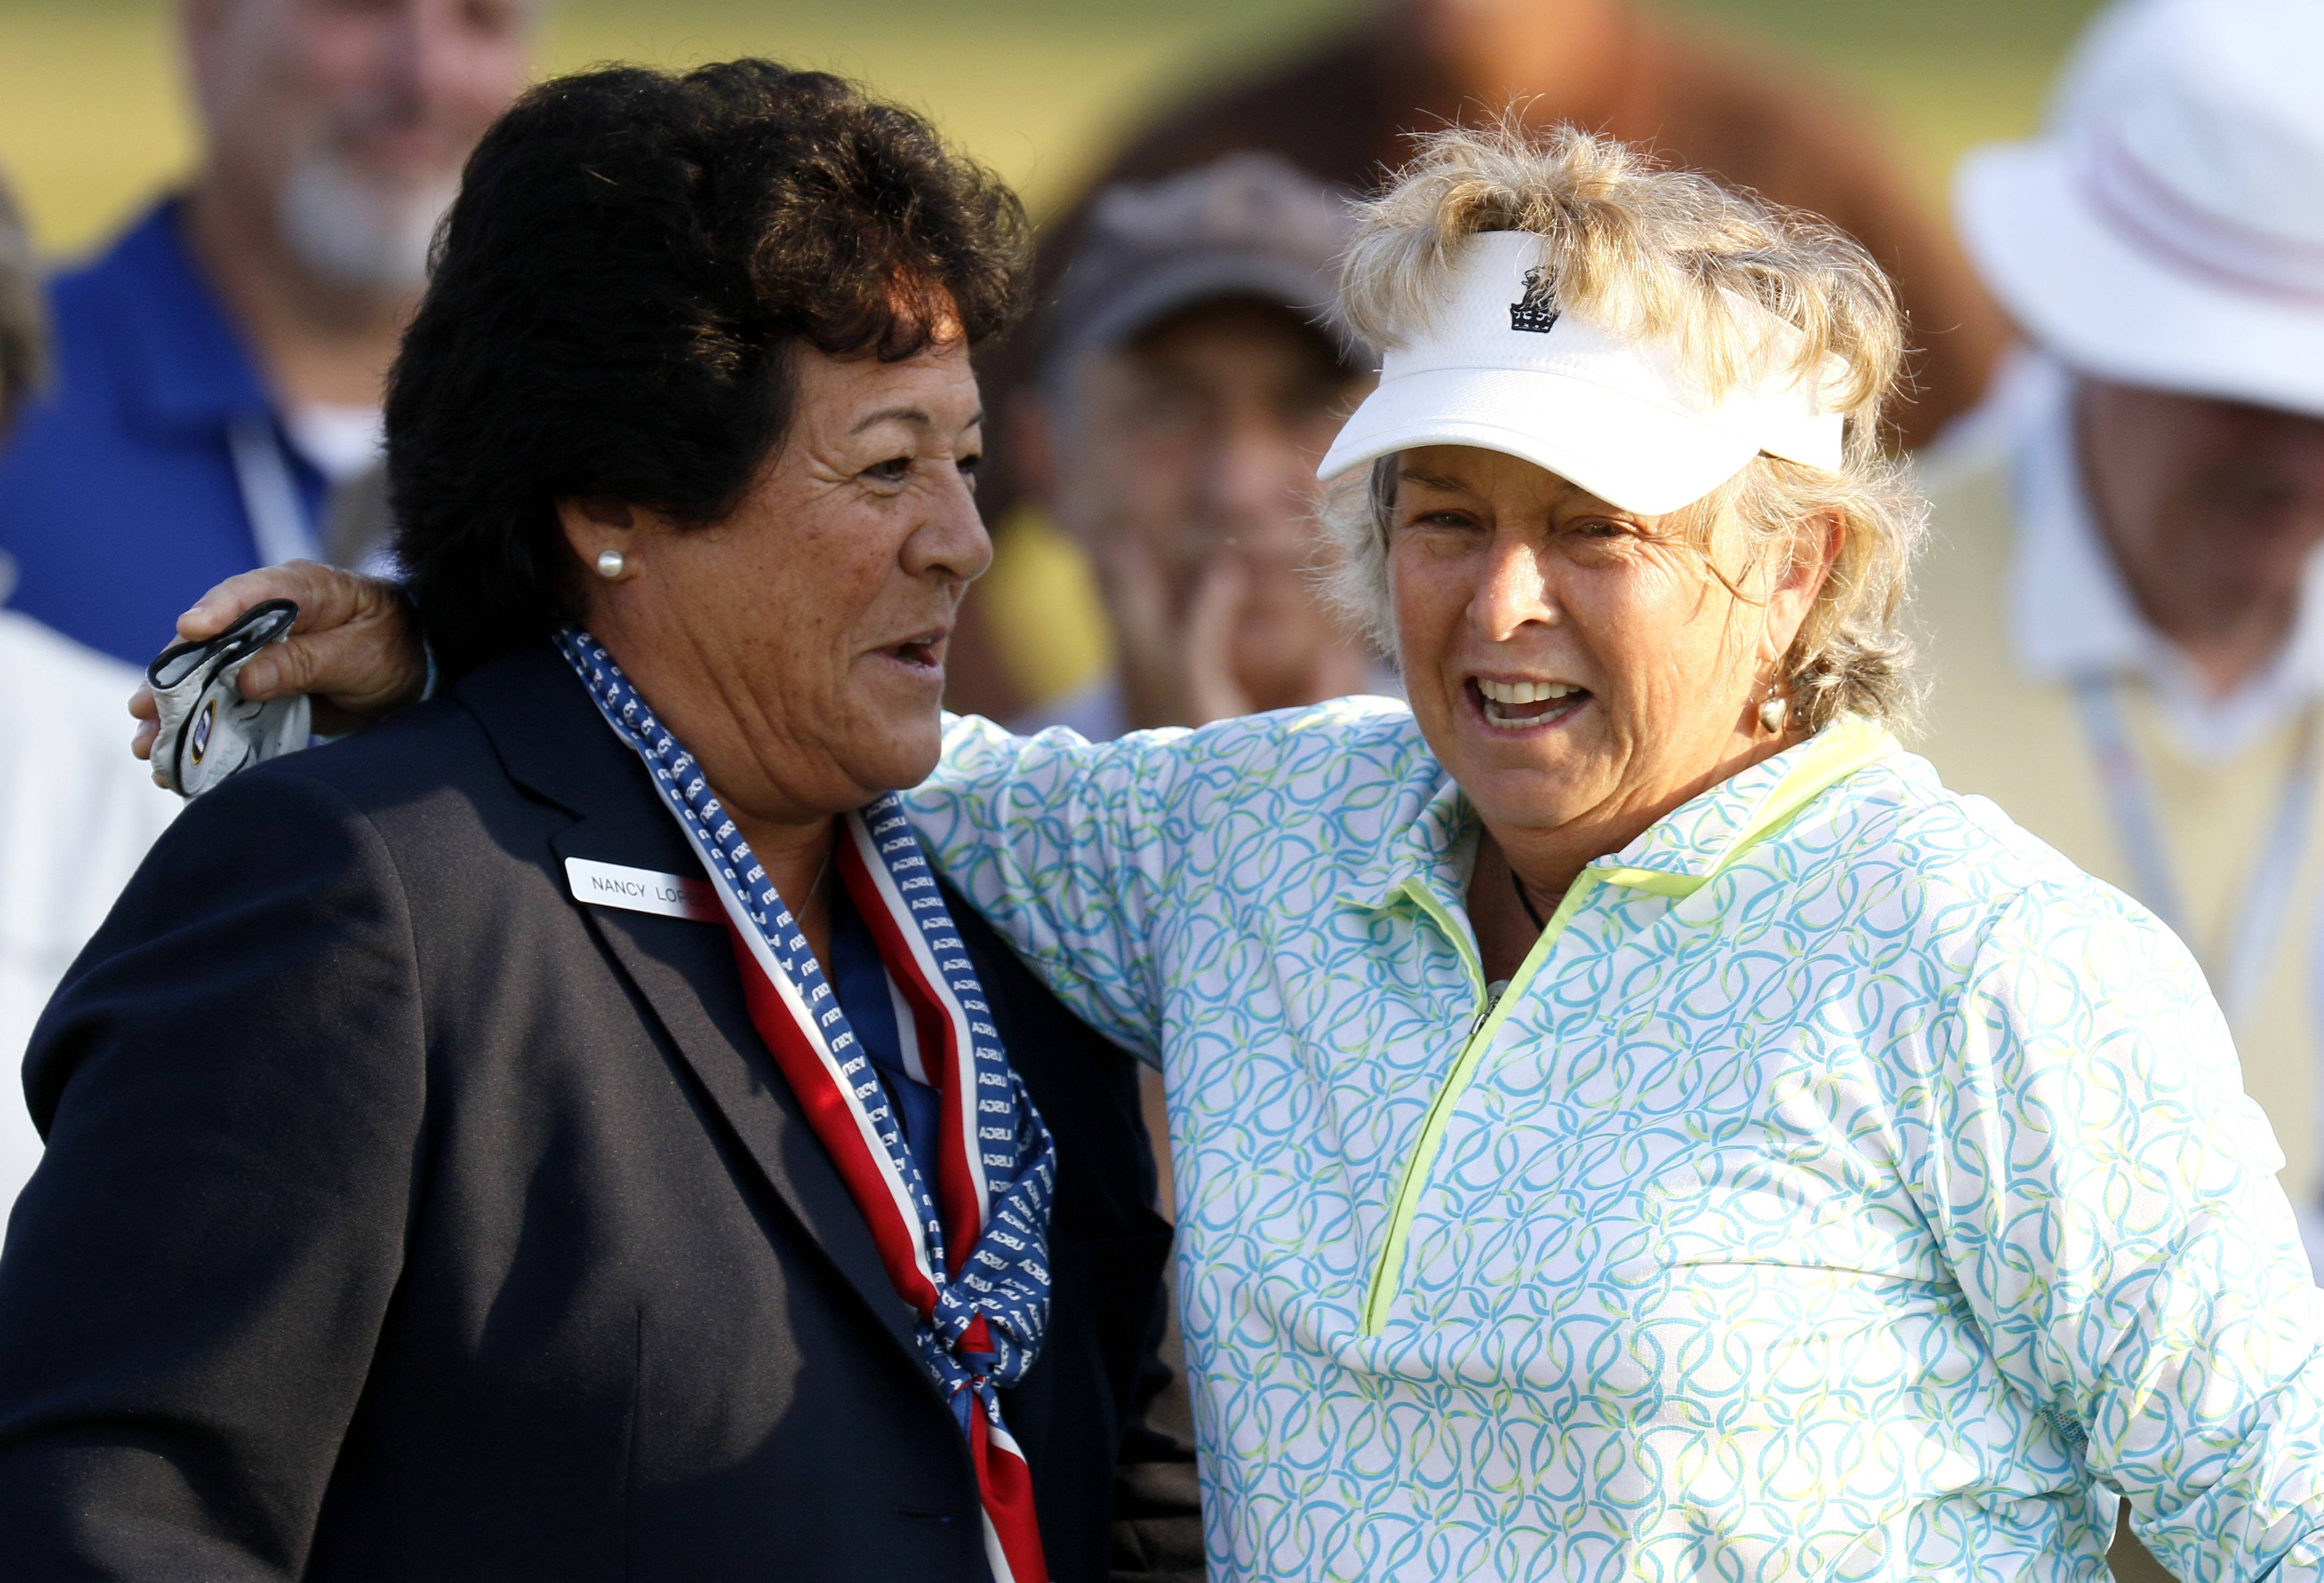 World Golf Hall of Famer Nancy Lopez, left, greets Hollis Stacy, right, at the first tee.